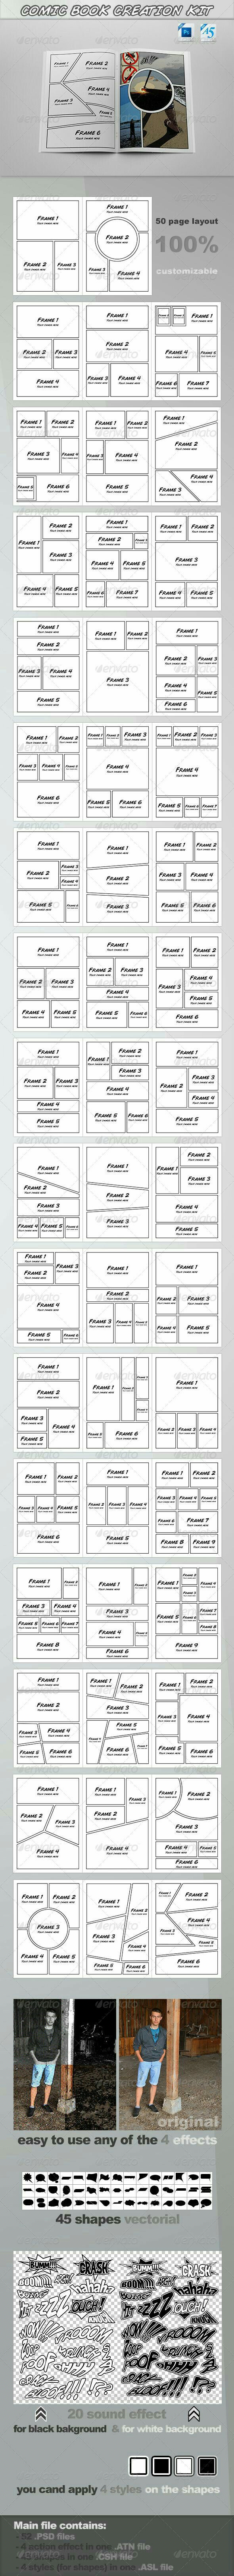 9 best storyboard diagrams images on pinterest template role